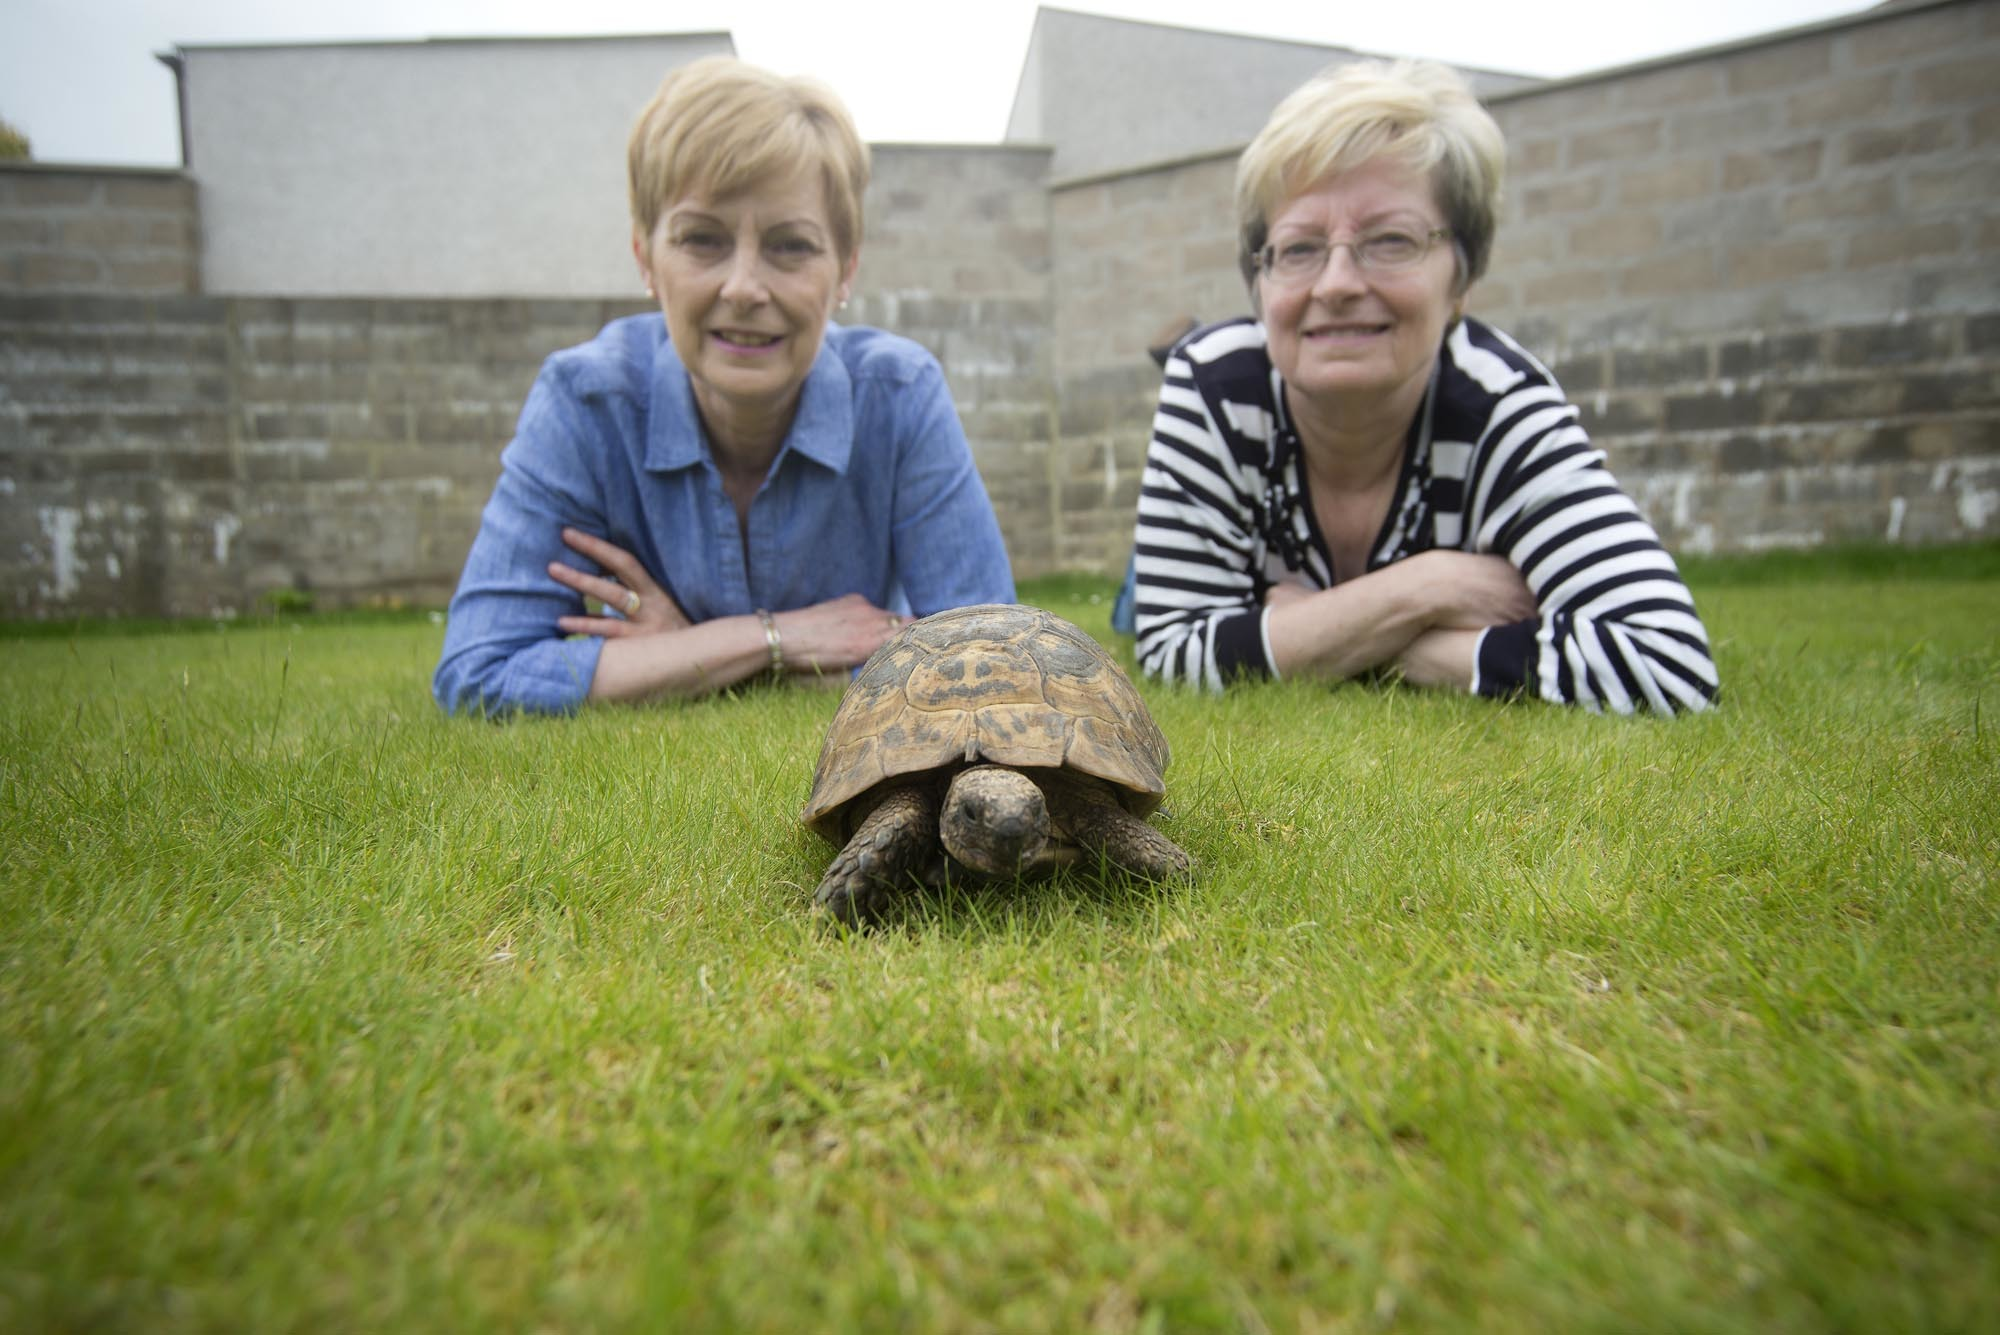 Twins Angela Russell-Taylor and Jacqueline Hall with Timmy the Tortoise, 50 years after they snapped him up for the princely sum of 37p.